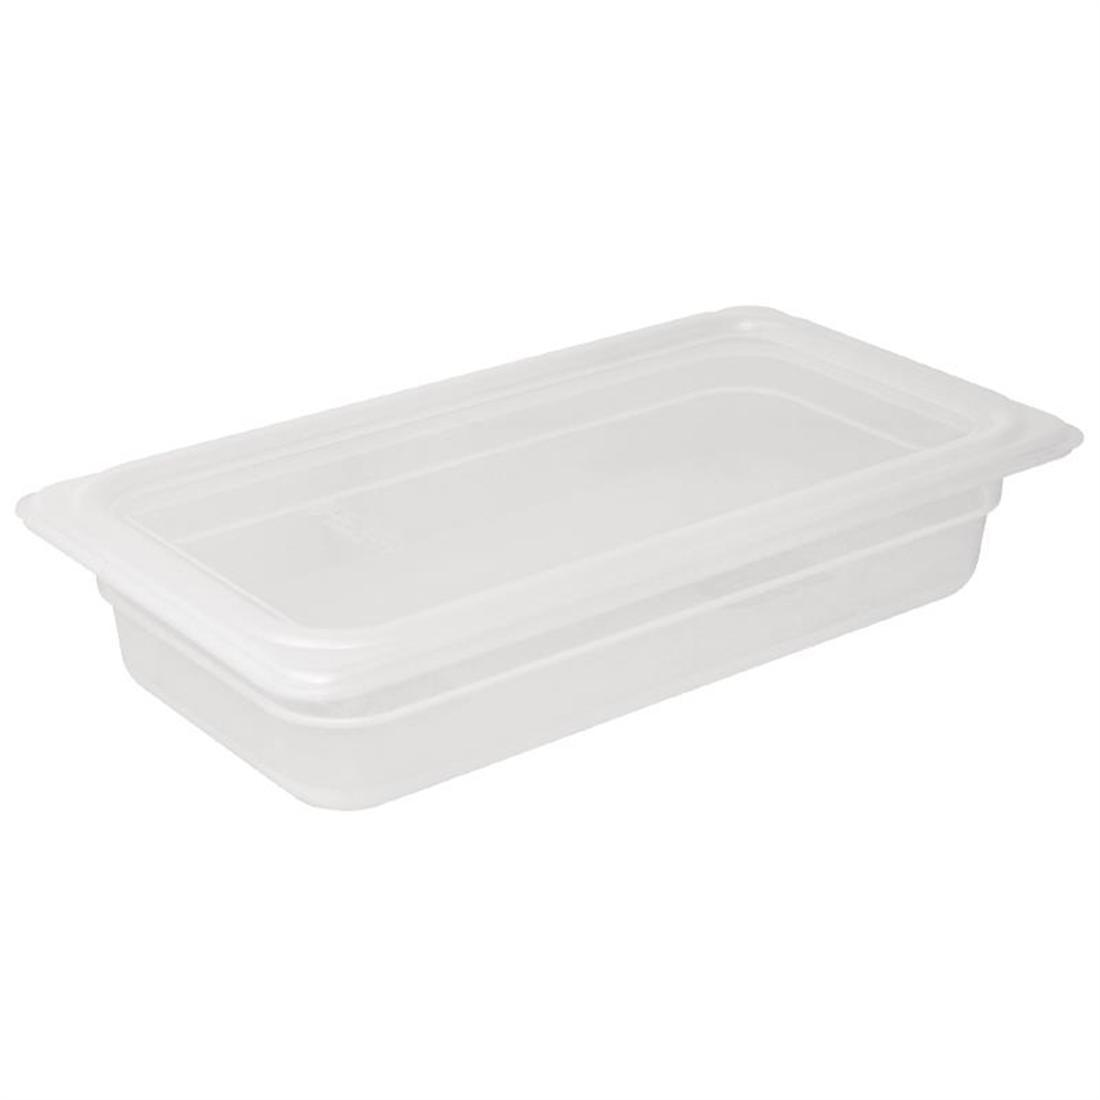 Vogue Polypropylene 1/3 Gastronorm Container with Lid 200mm - Pack of 4 - GJ521